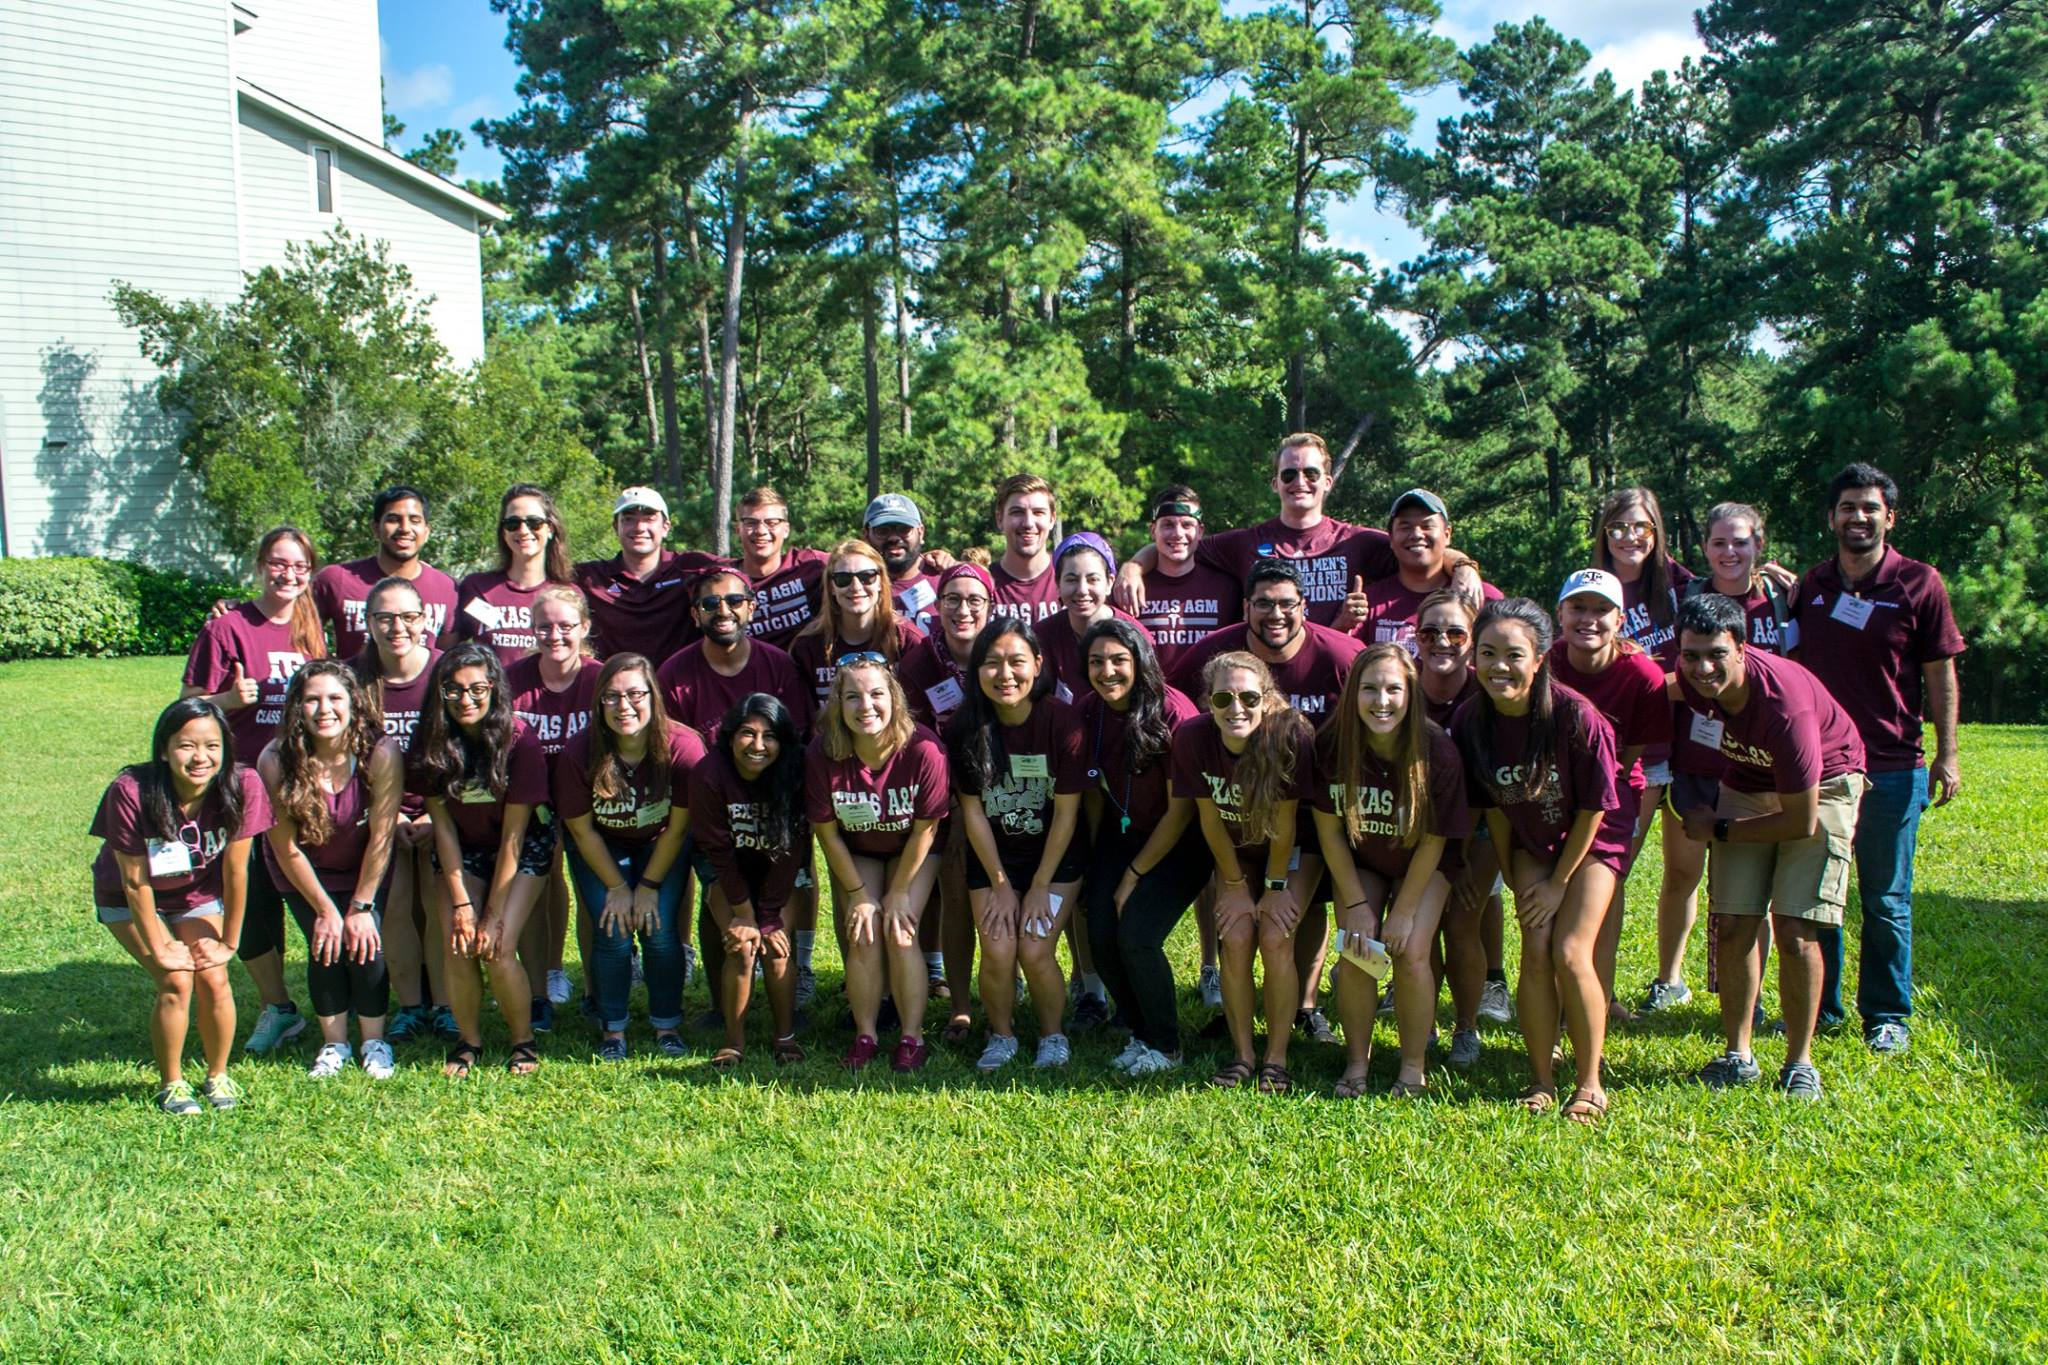 Disorientation Camp counselors (M2s) during the summer. Photo by Sarah Fulton, M2.